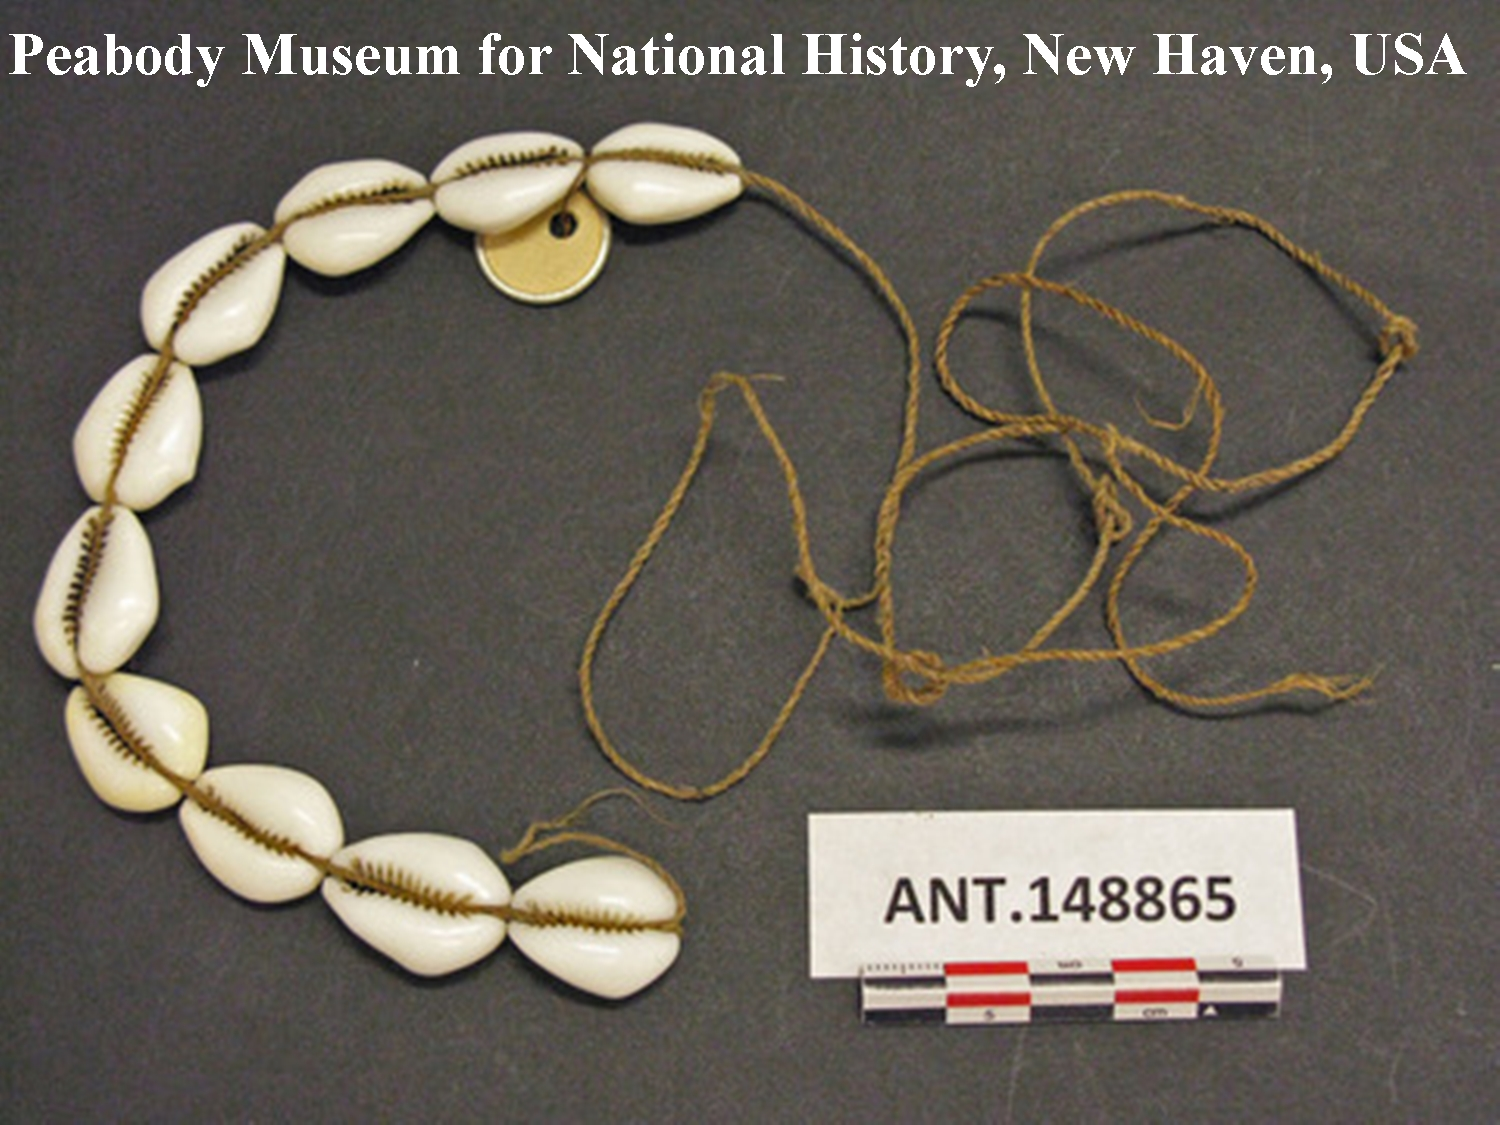 "Abb. 5: ""tuani mege"", von den Weißen eingeführte Kauris von geringem Wert. Beschreibung: 10 cowries strung on inner bark string, used as shell money ""tuani mege"". All are recently made pieces of shell introduced by white man. Low value. Length 7 ¾ in. Southern Kamu Valley, Kapauku, Netherlands New Guinea."